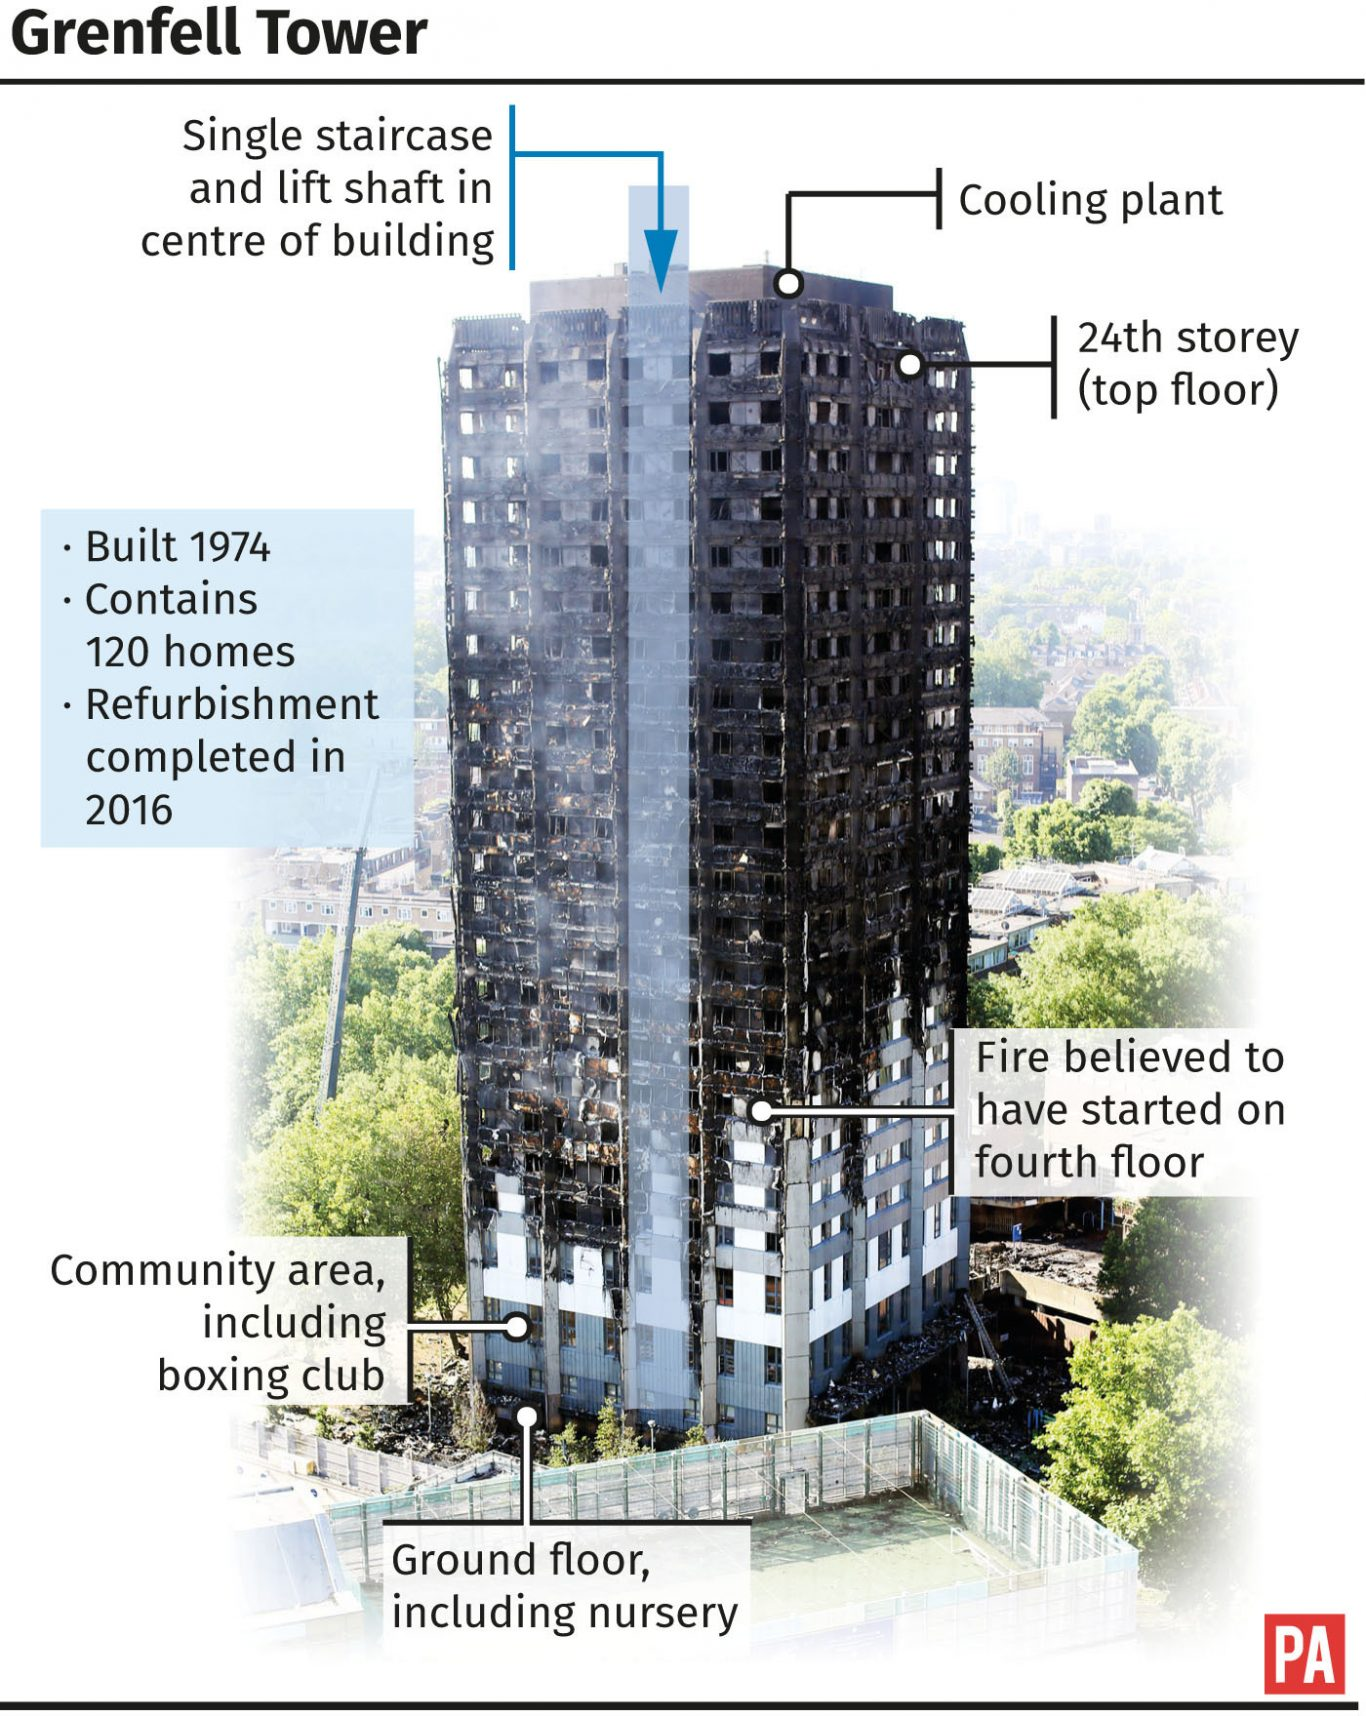 Grenfell Tower Fire Victim Count Increases, Police Investigate Possible Crimes